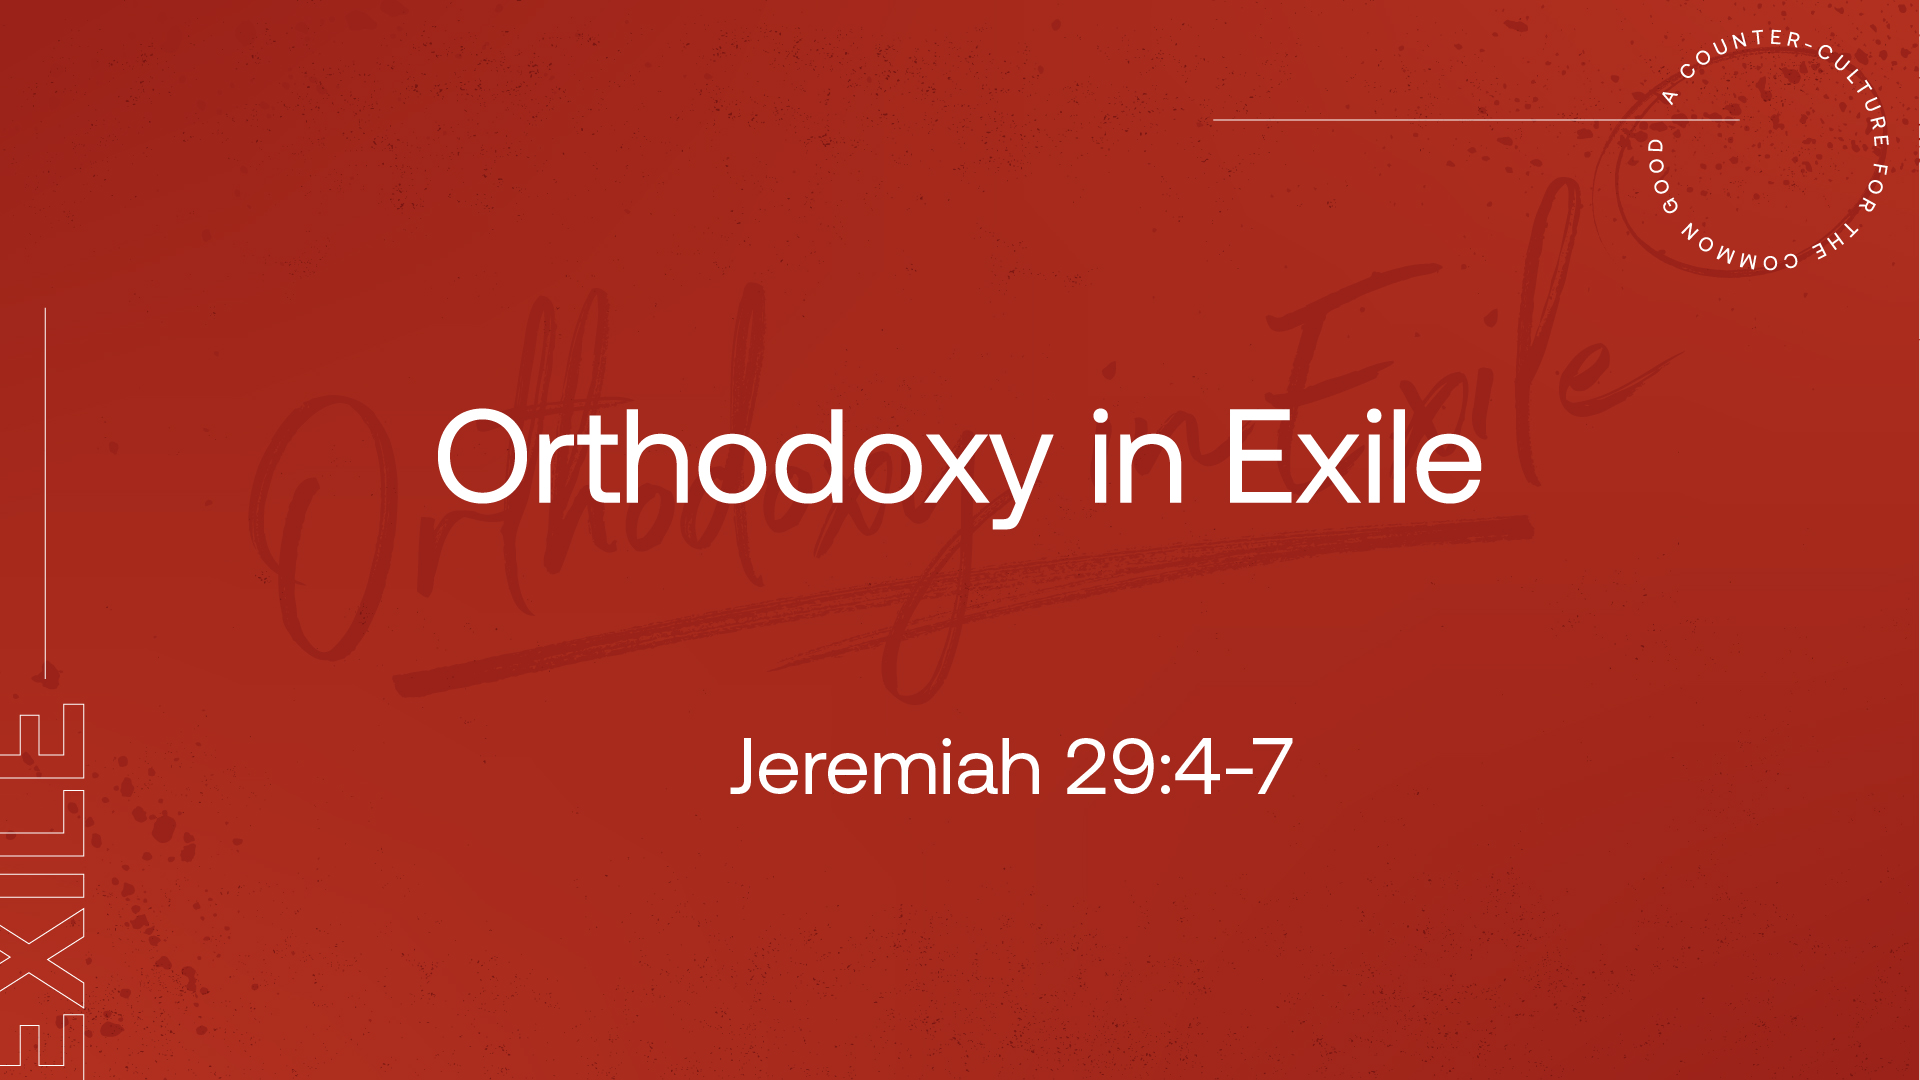 Orthodoxy in Exile